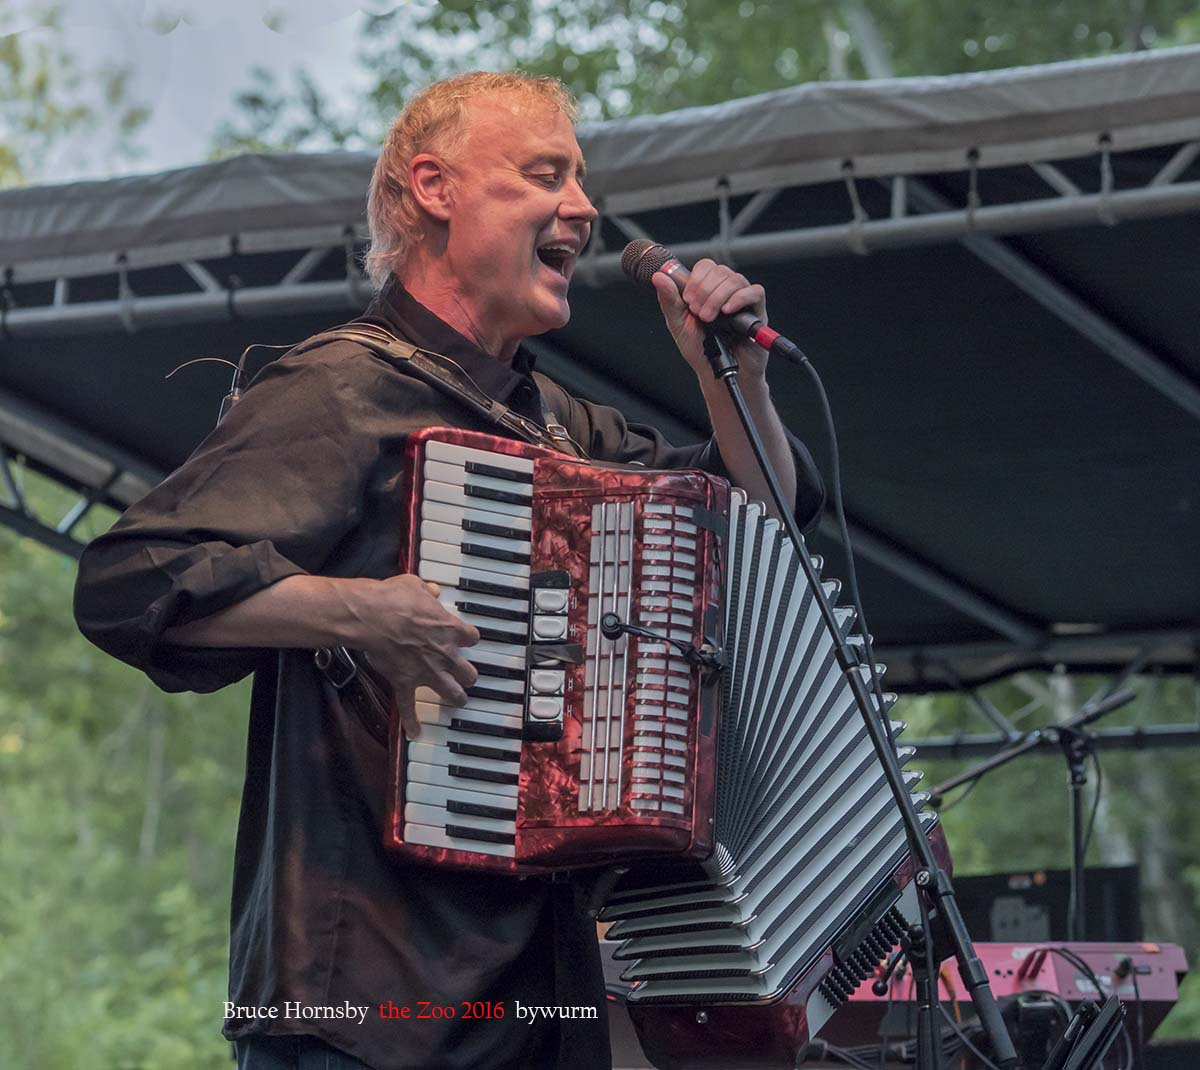 bruce-hornsby_zoo-2016_bywurm-18